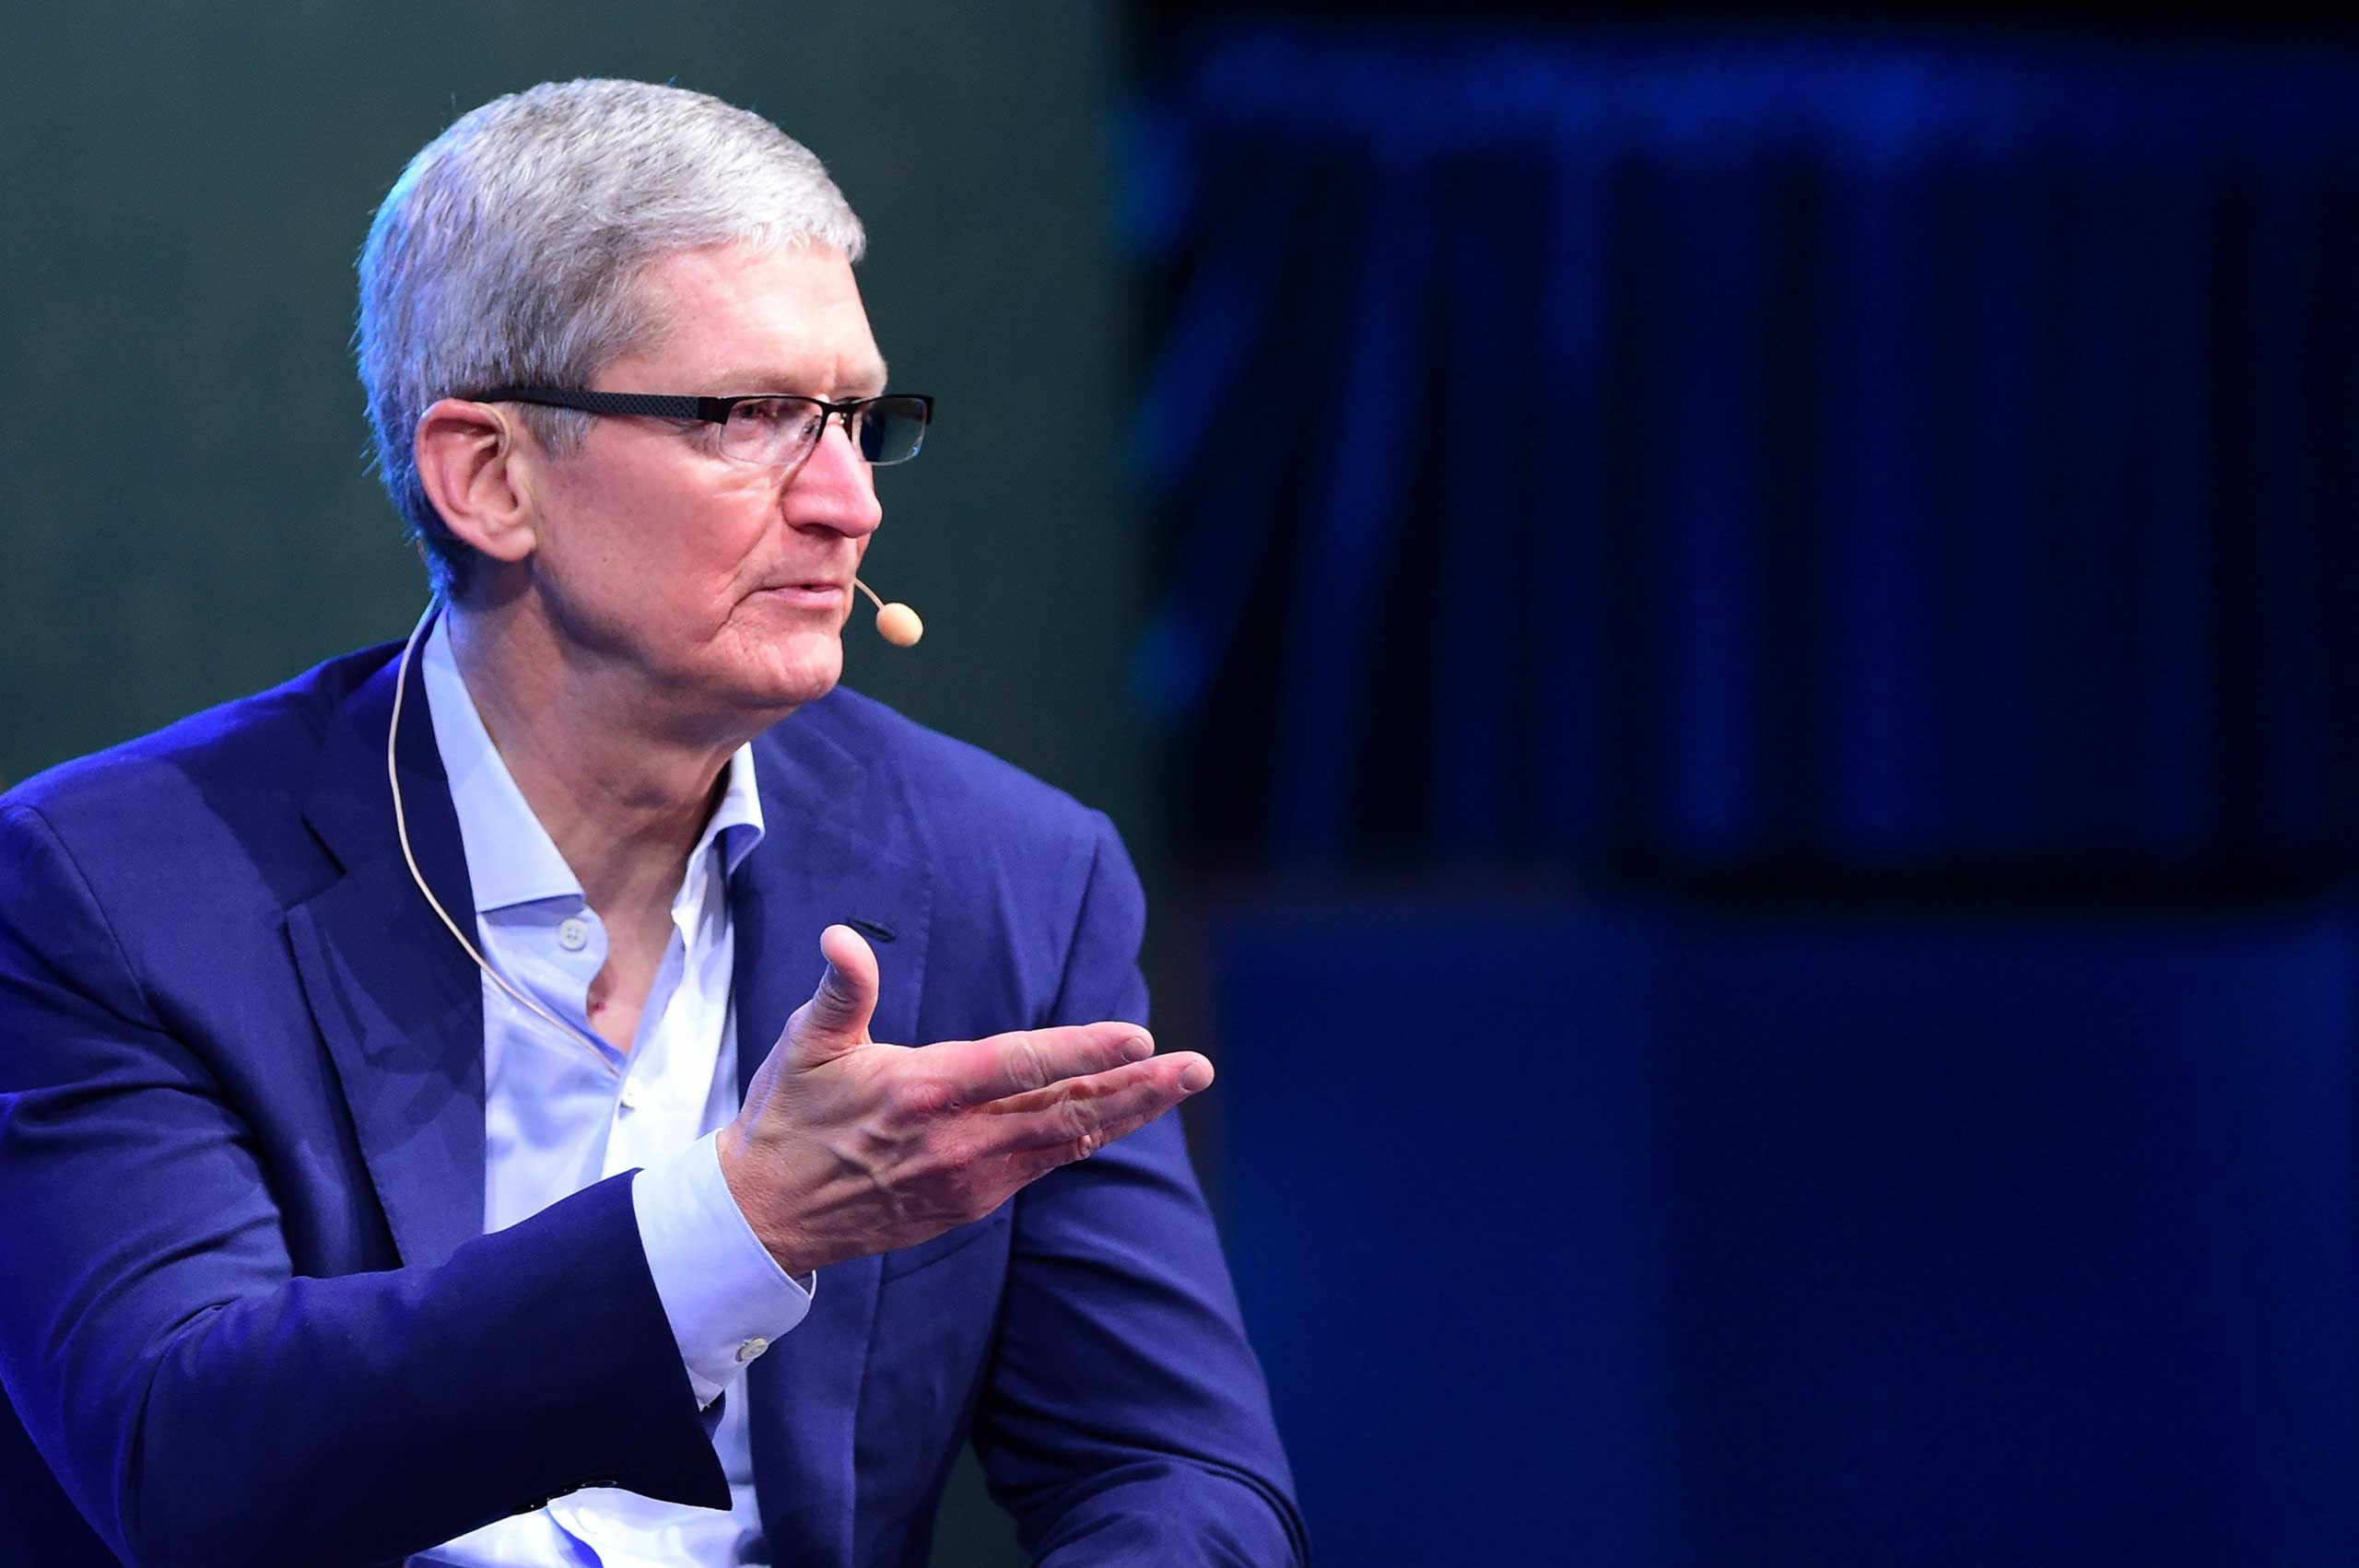 Tim Cook, CEO of Apple, gestures while responding to questions in Laguna Beach, California at the opening of the 2015 WSJD Live, on Oct. 19, 2015.